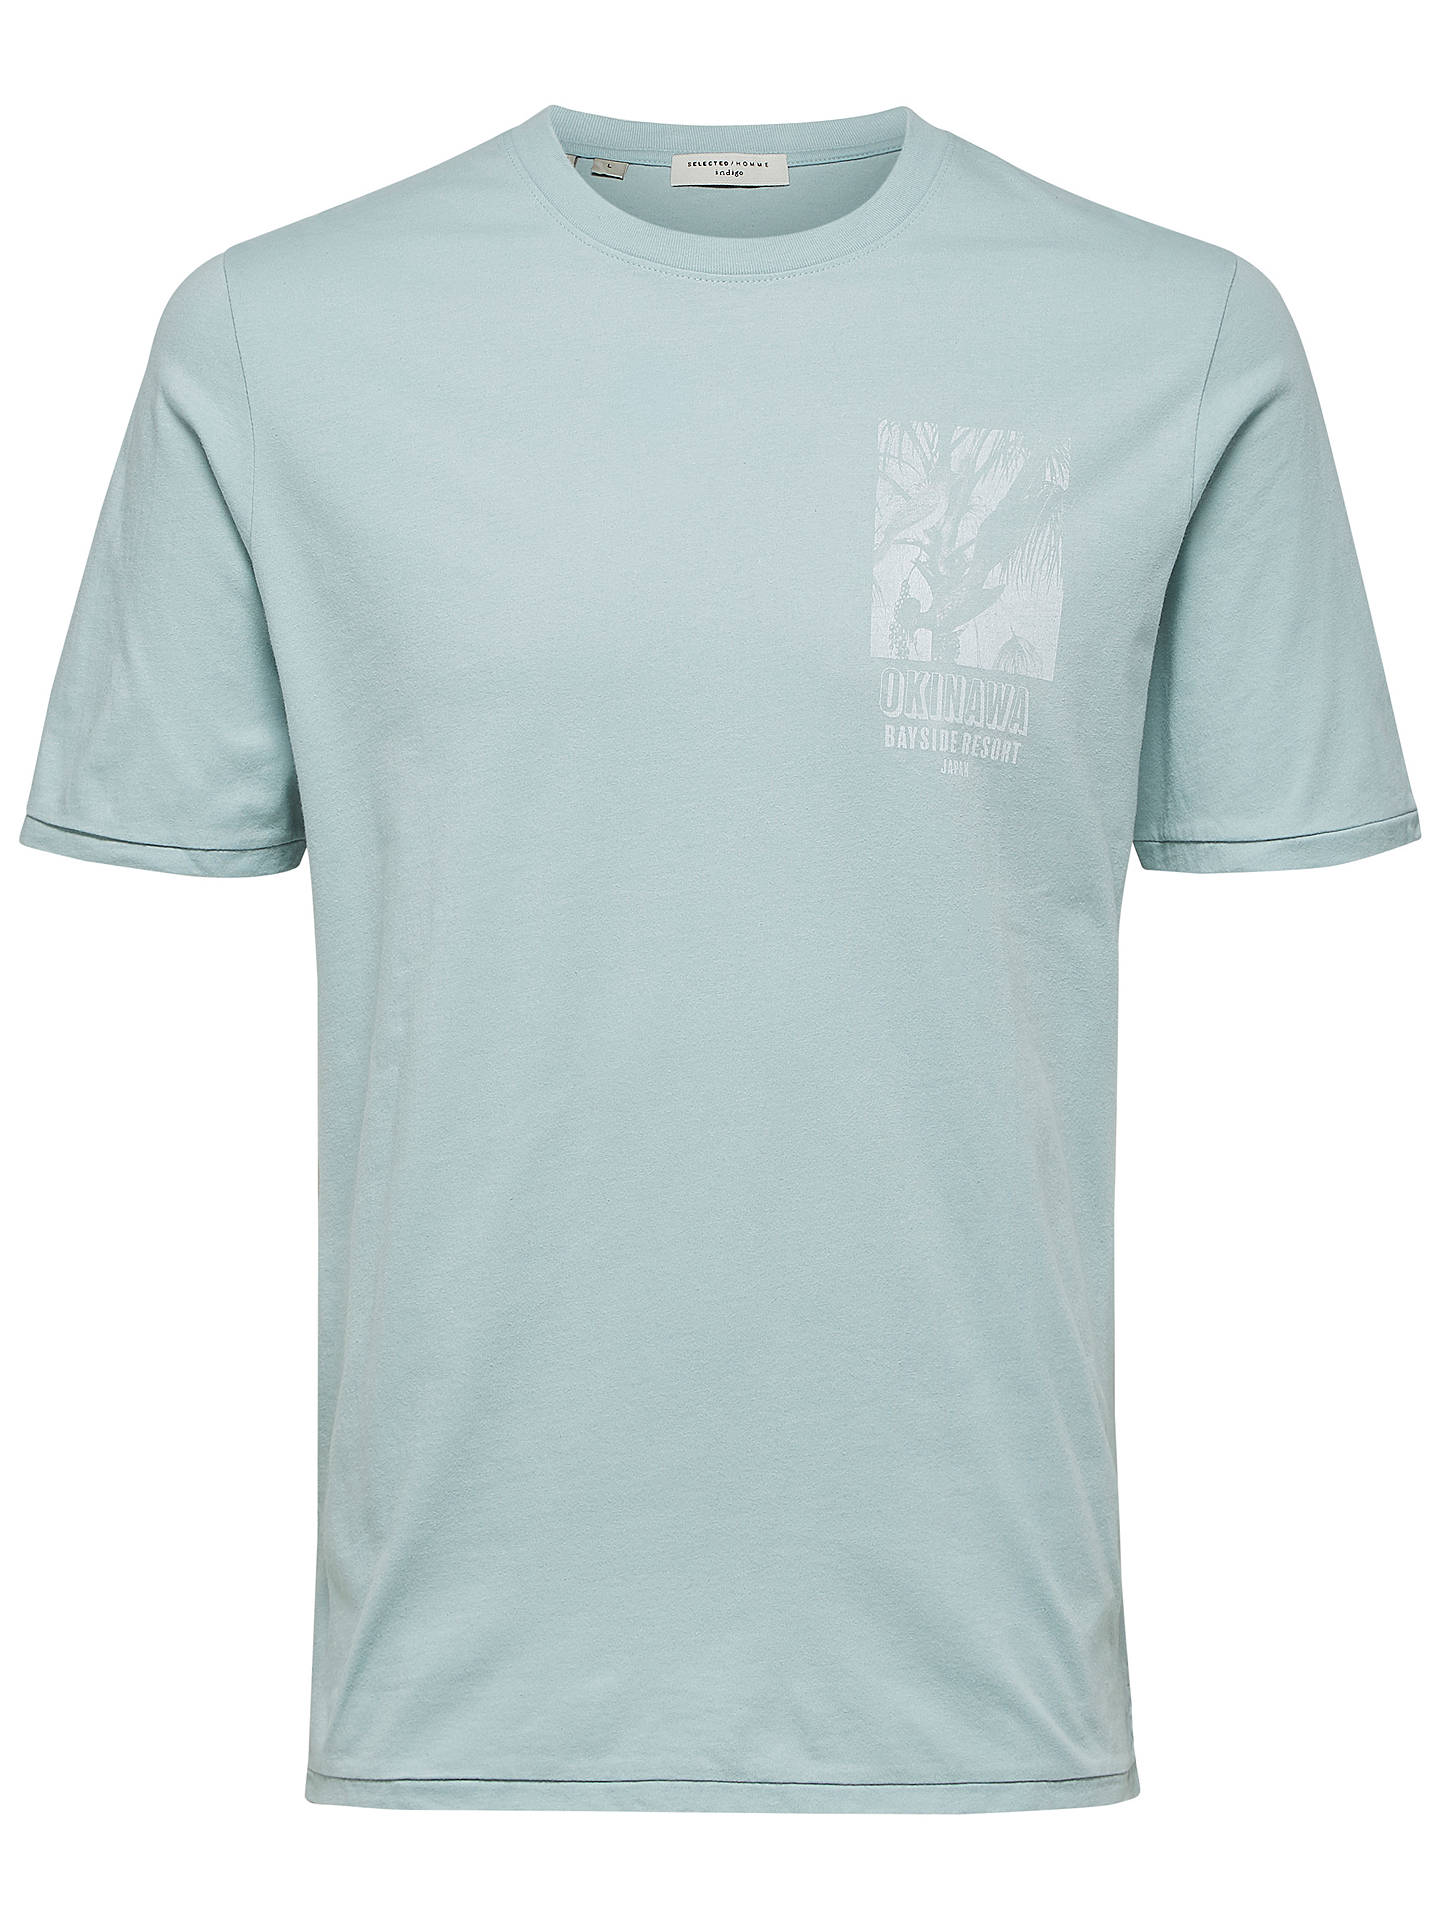 BuySelected Homme Austin Short Sleeve T-Shirt, Cloud Blue, S Online at johnlewis.com